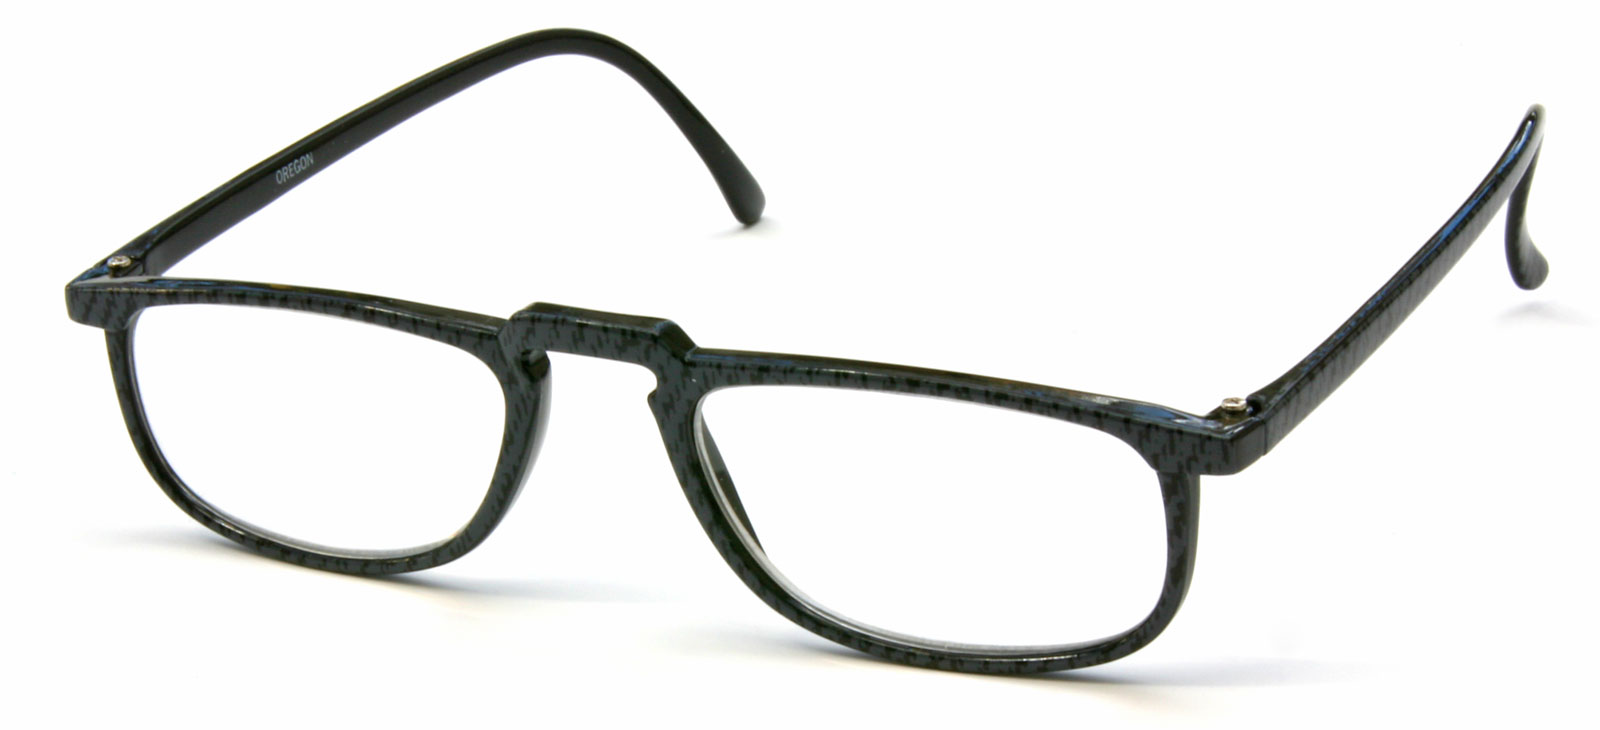 I Image Reading Glasses - Cliparts.co